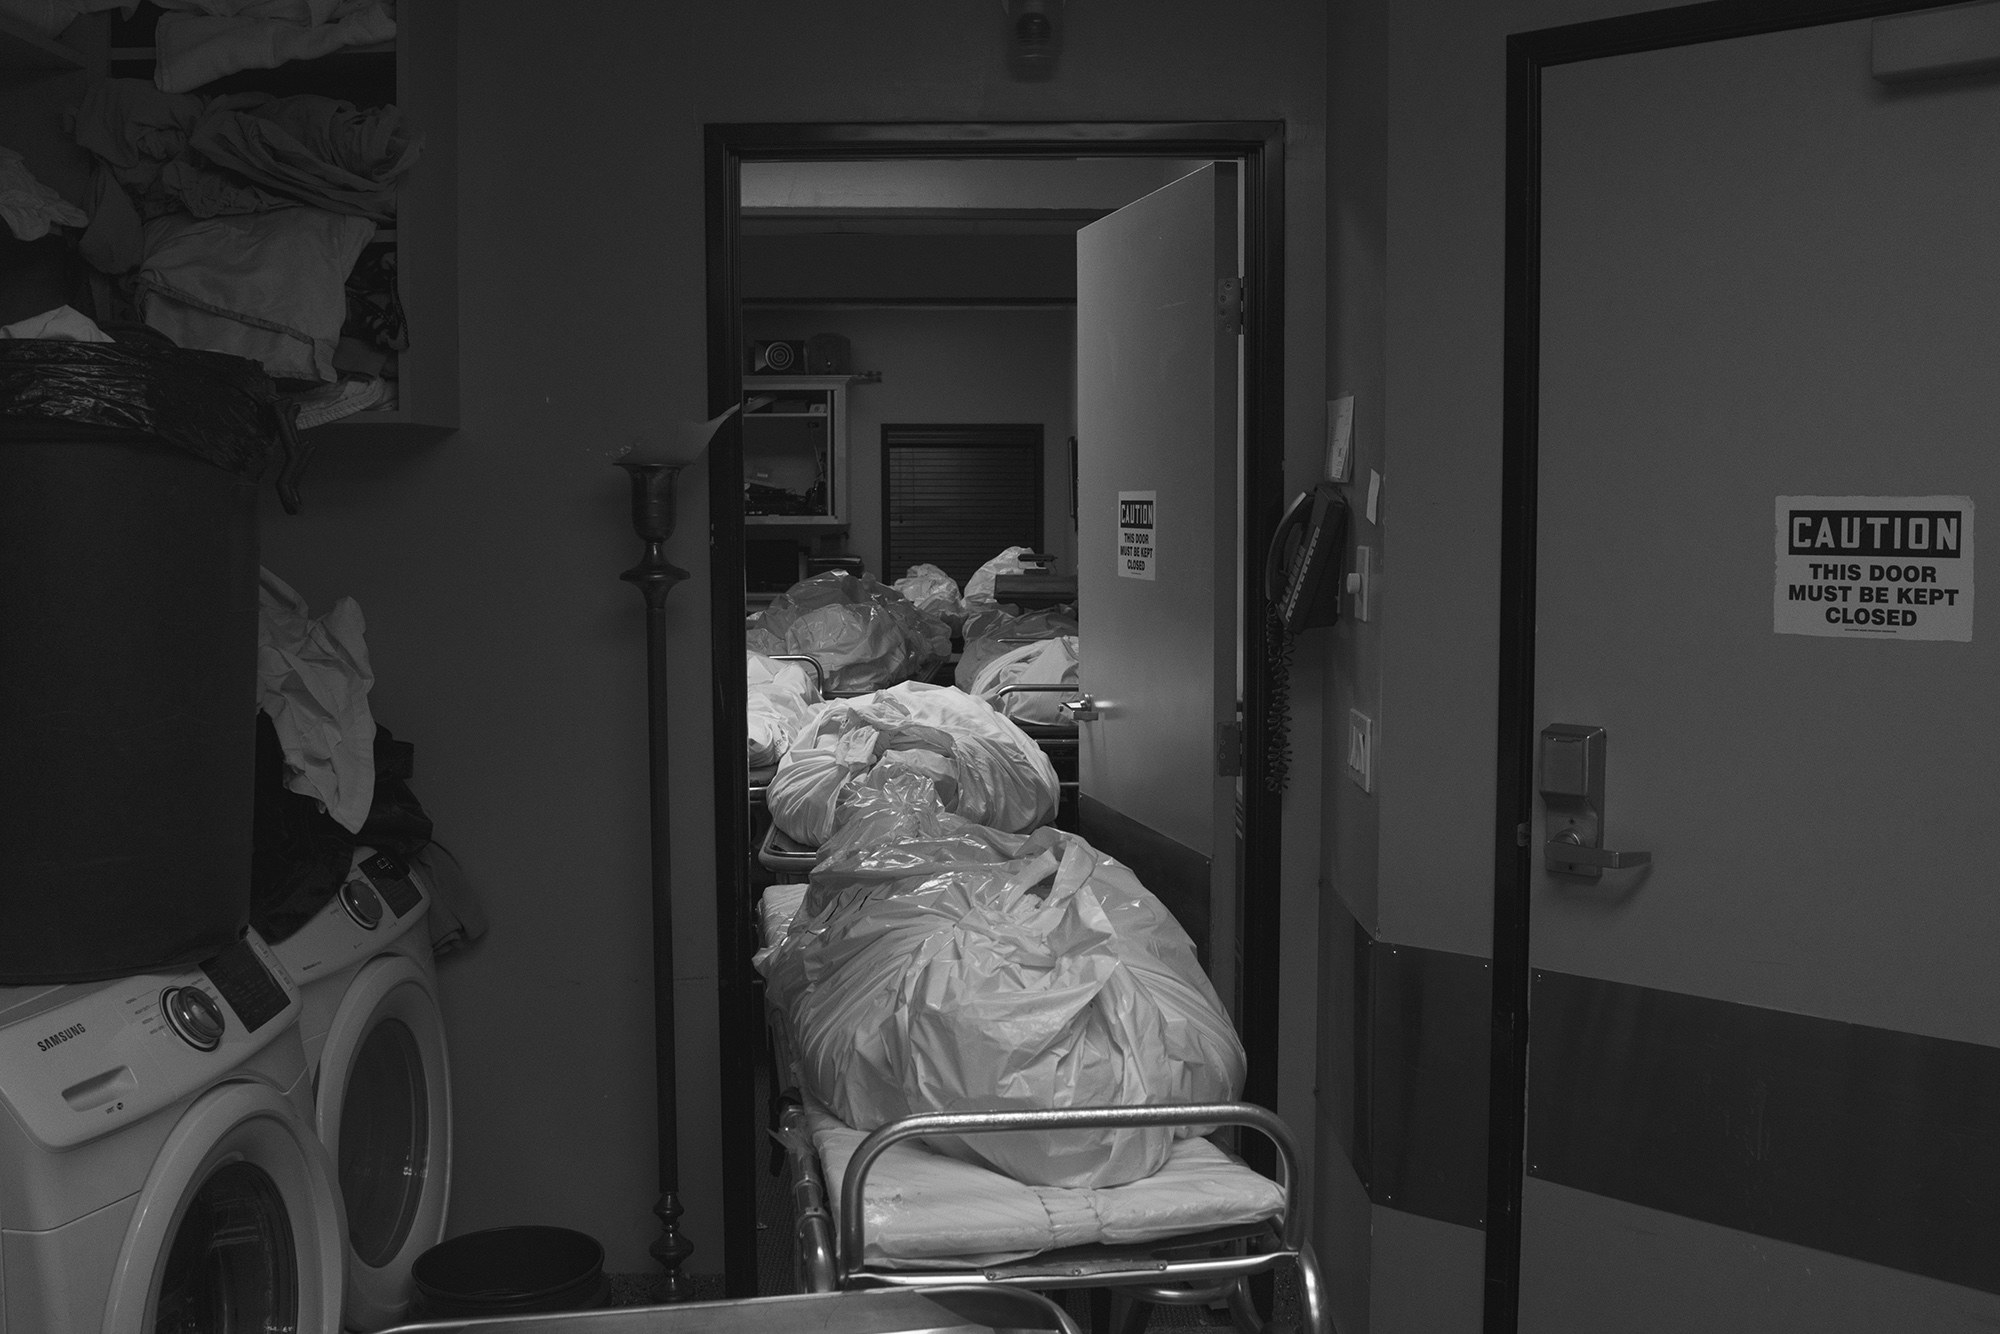 Many bodies are seen on gurneys in a hallway